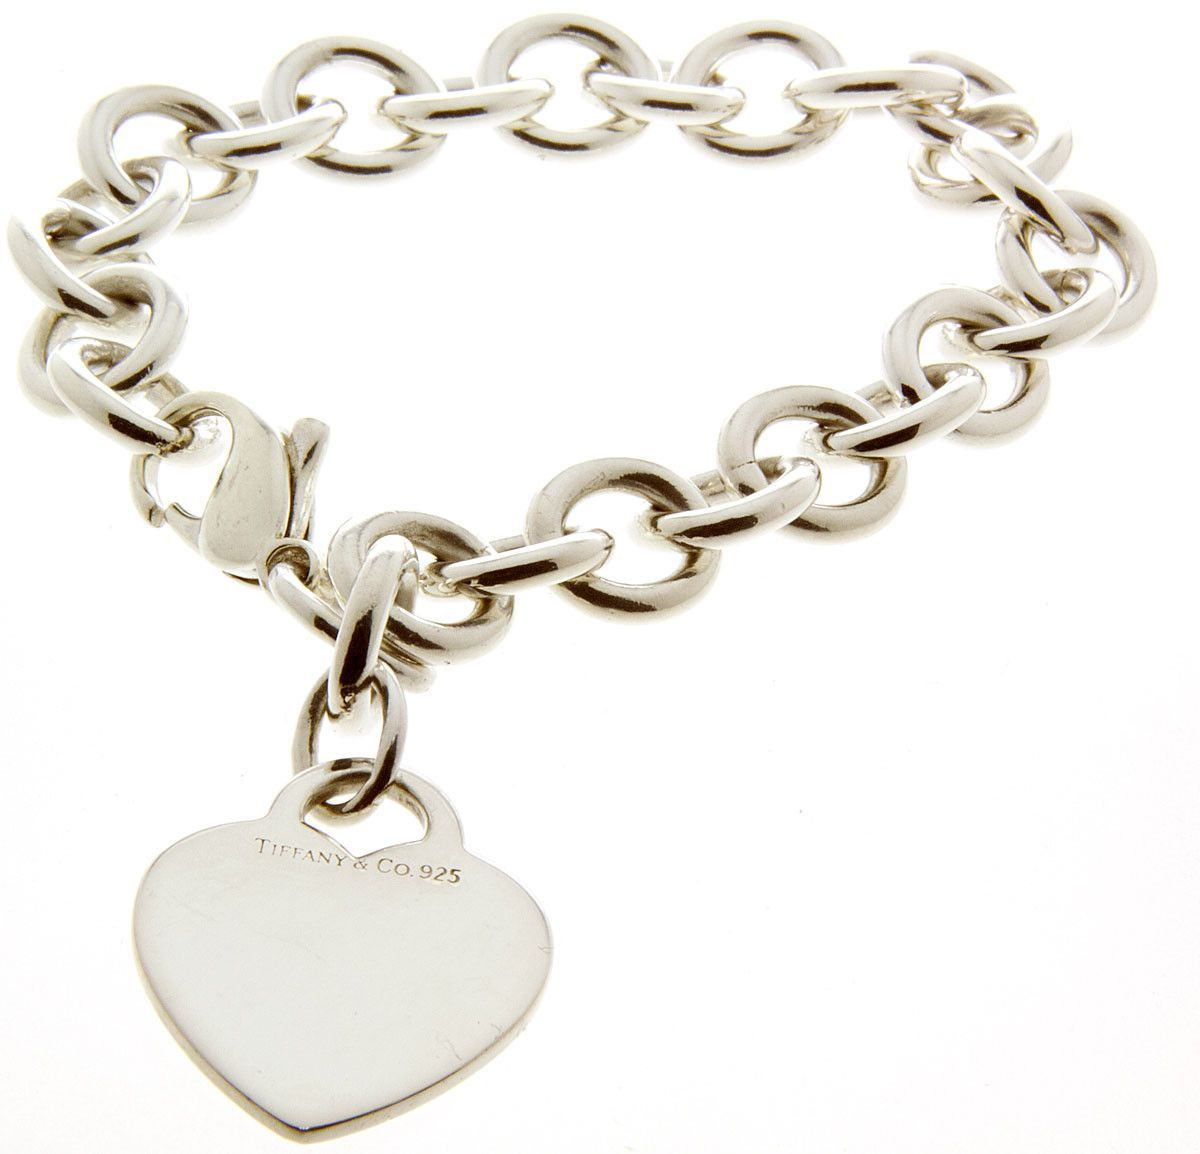 90f5256bfc0d Tiffany   Co. Heart Tag Charm Bracelet